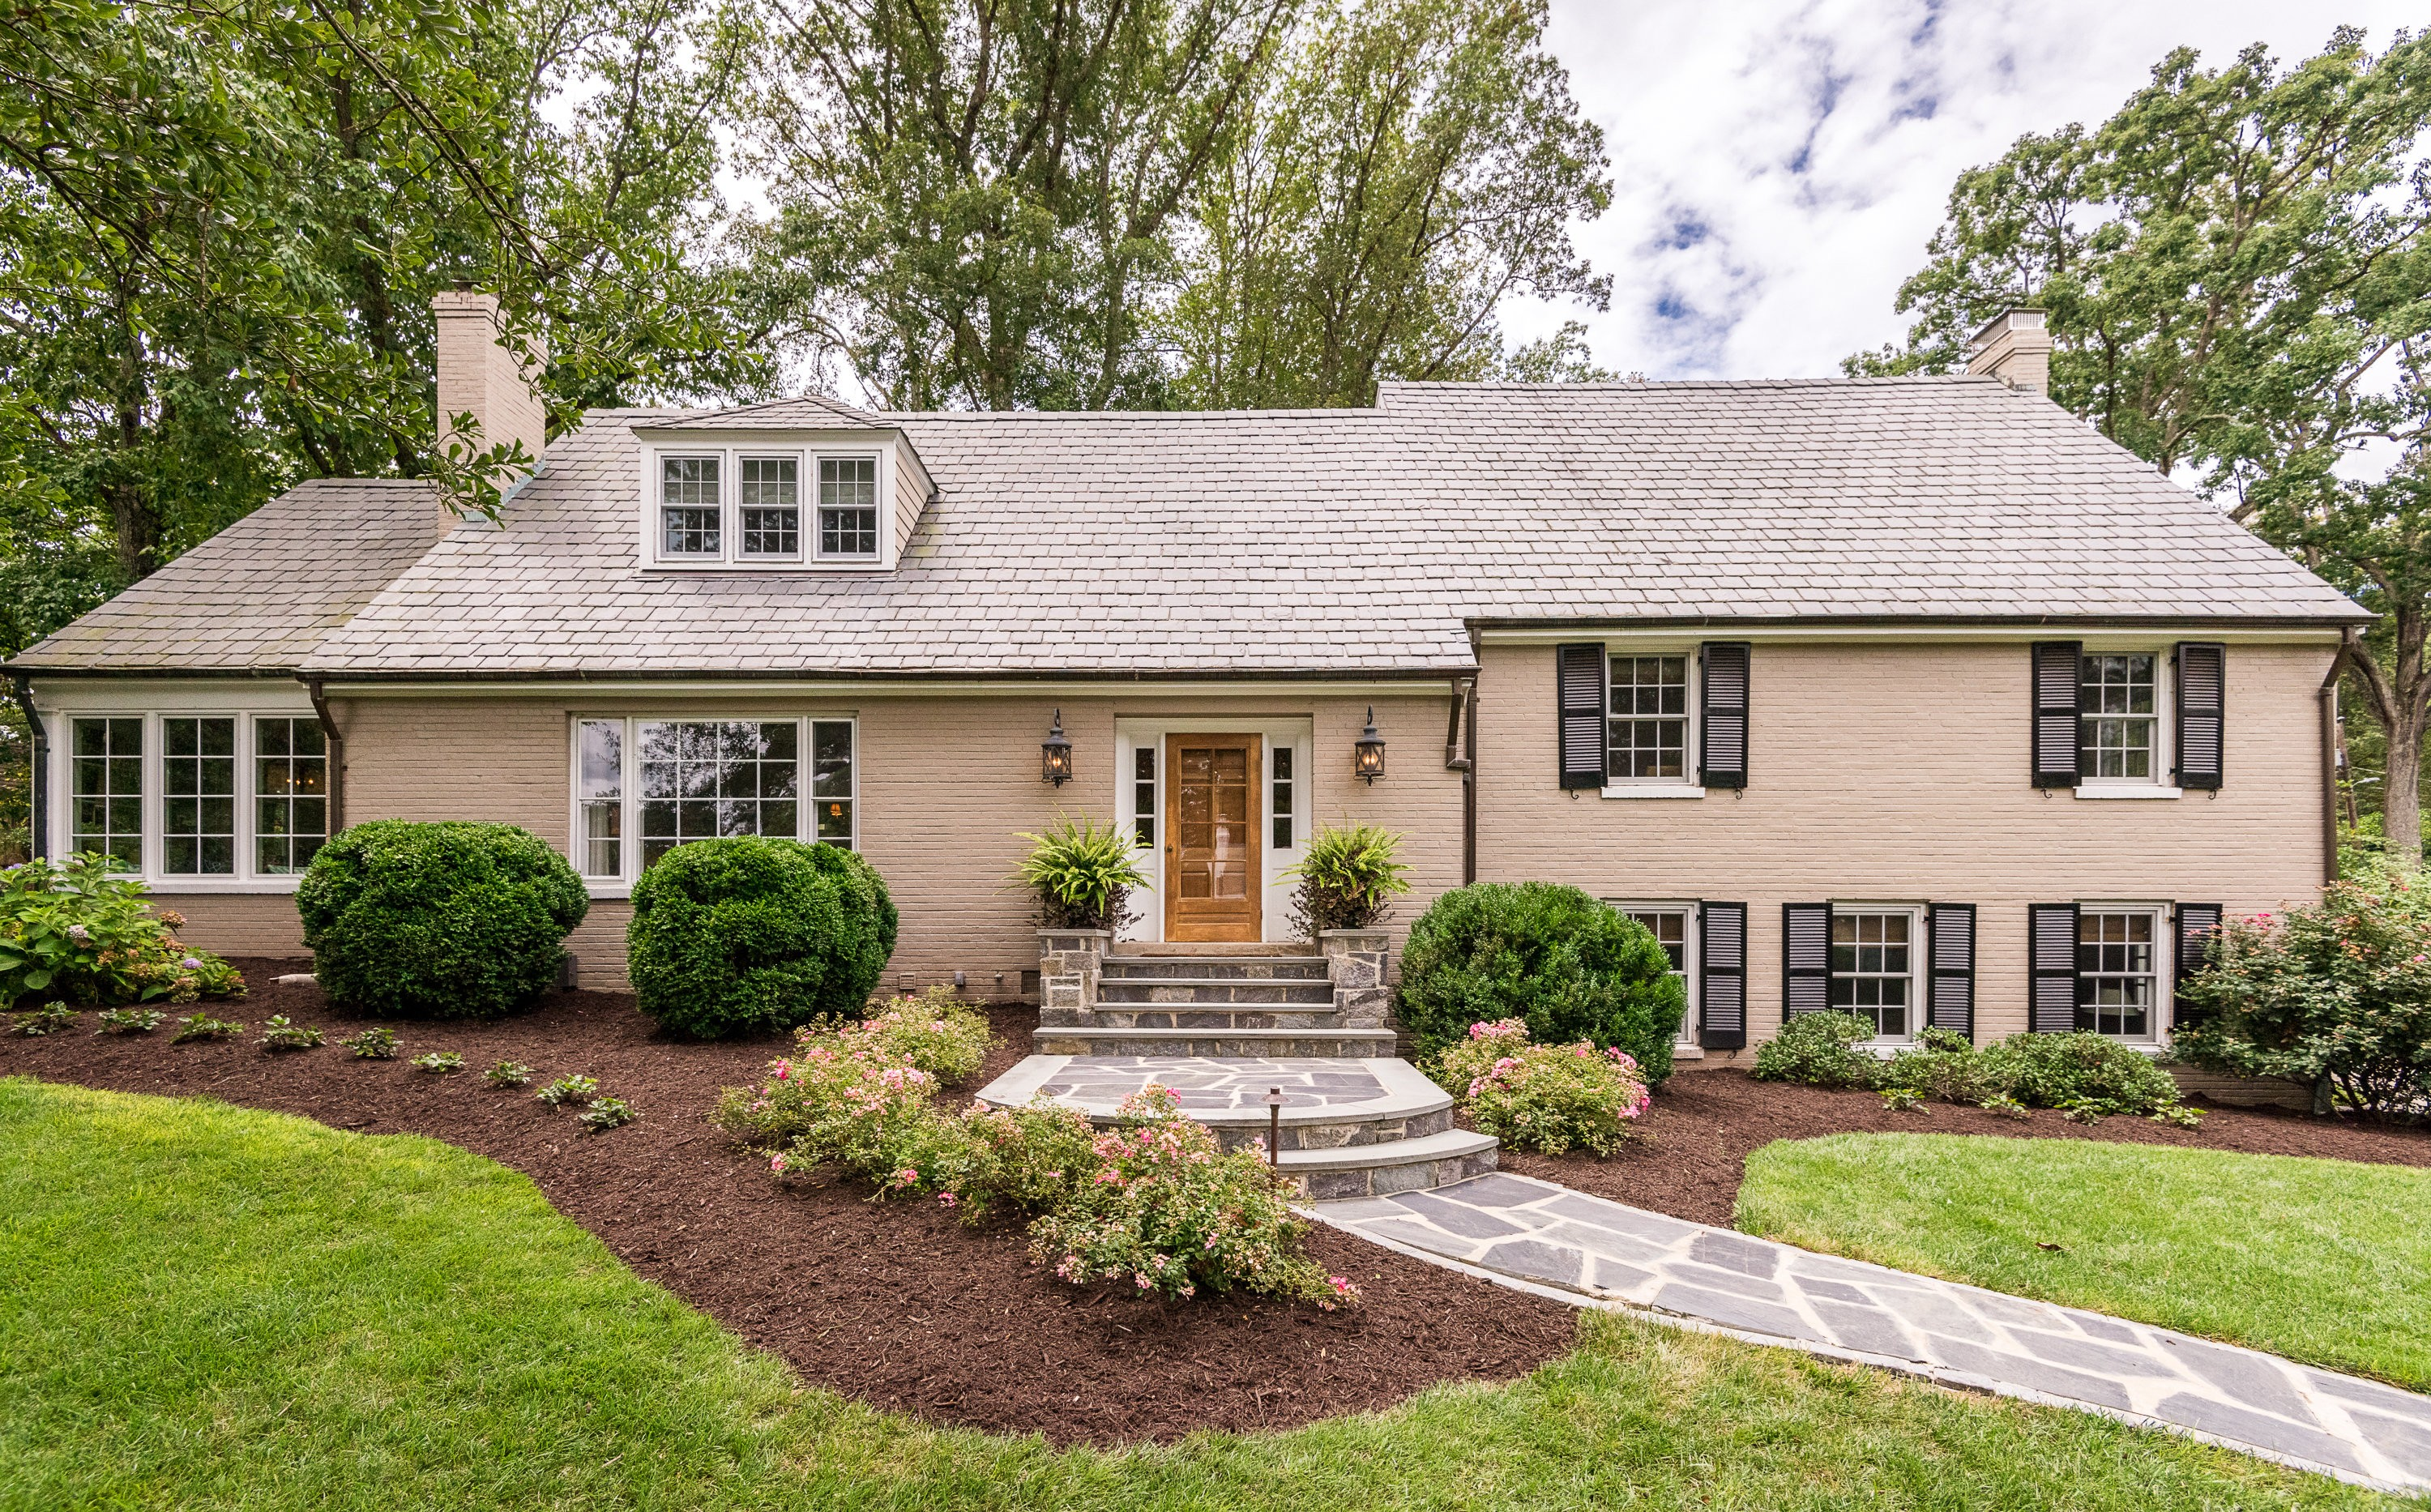 Single Family Home for Sale at Mooreland Farms 8905 Alendale Road Henrico, Virginia, 23229 United States